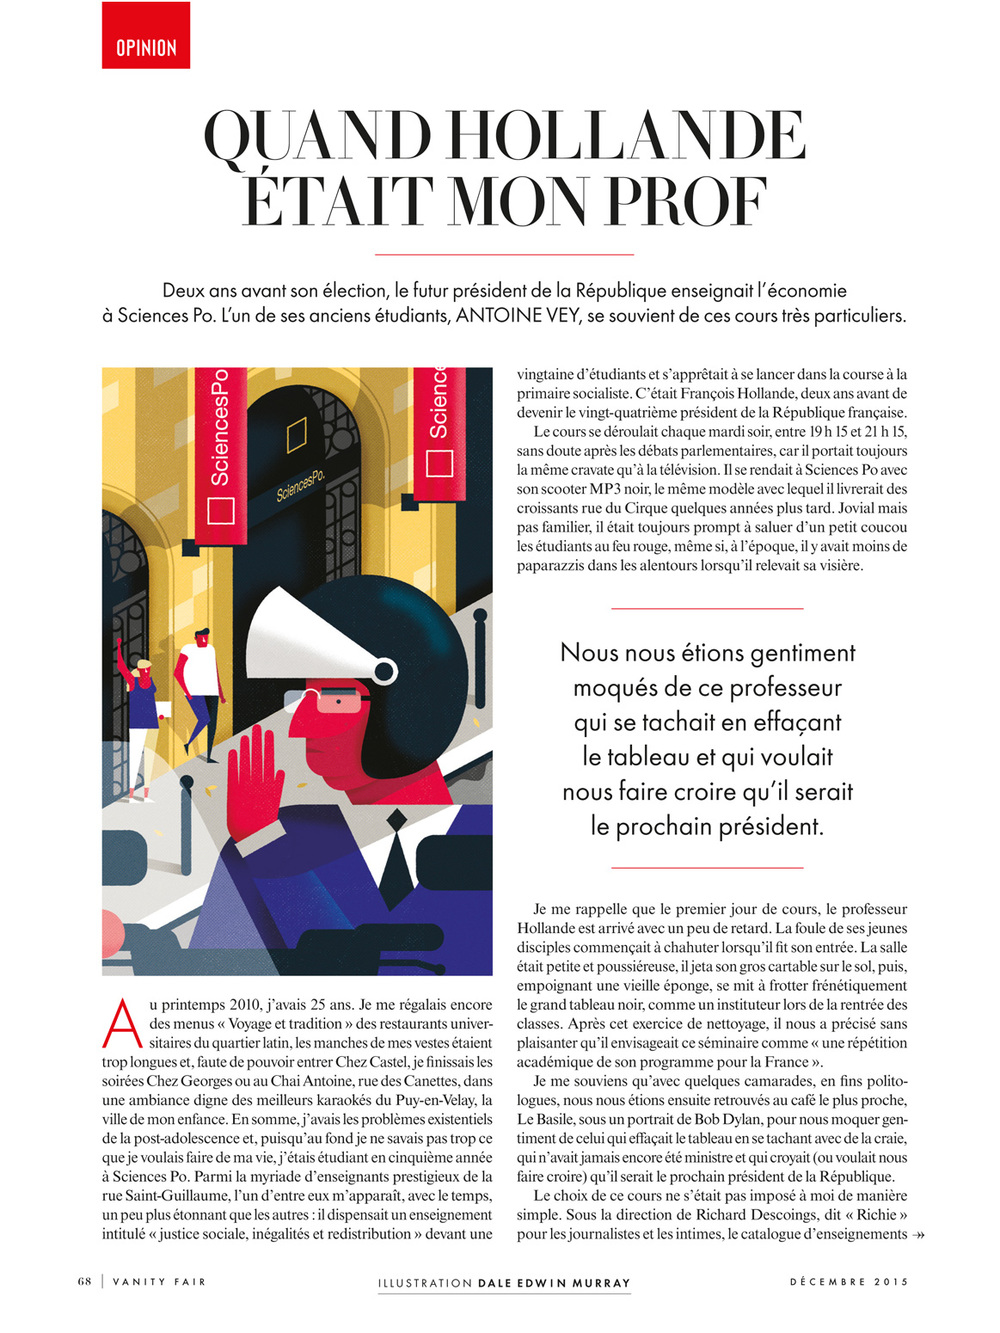 Freelance illustrator dale edwin murray vanity fair france editorial conceptual magazine illustration